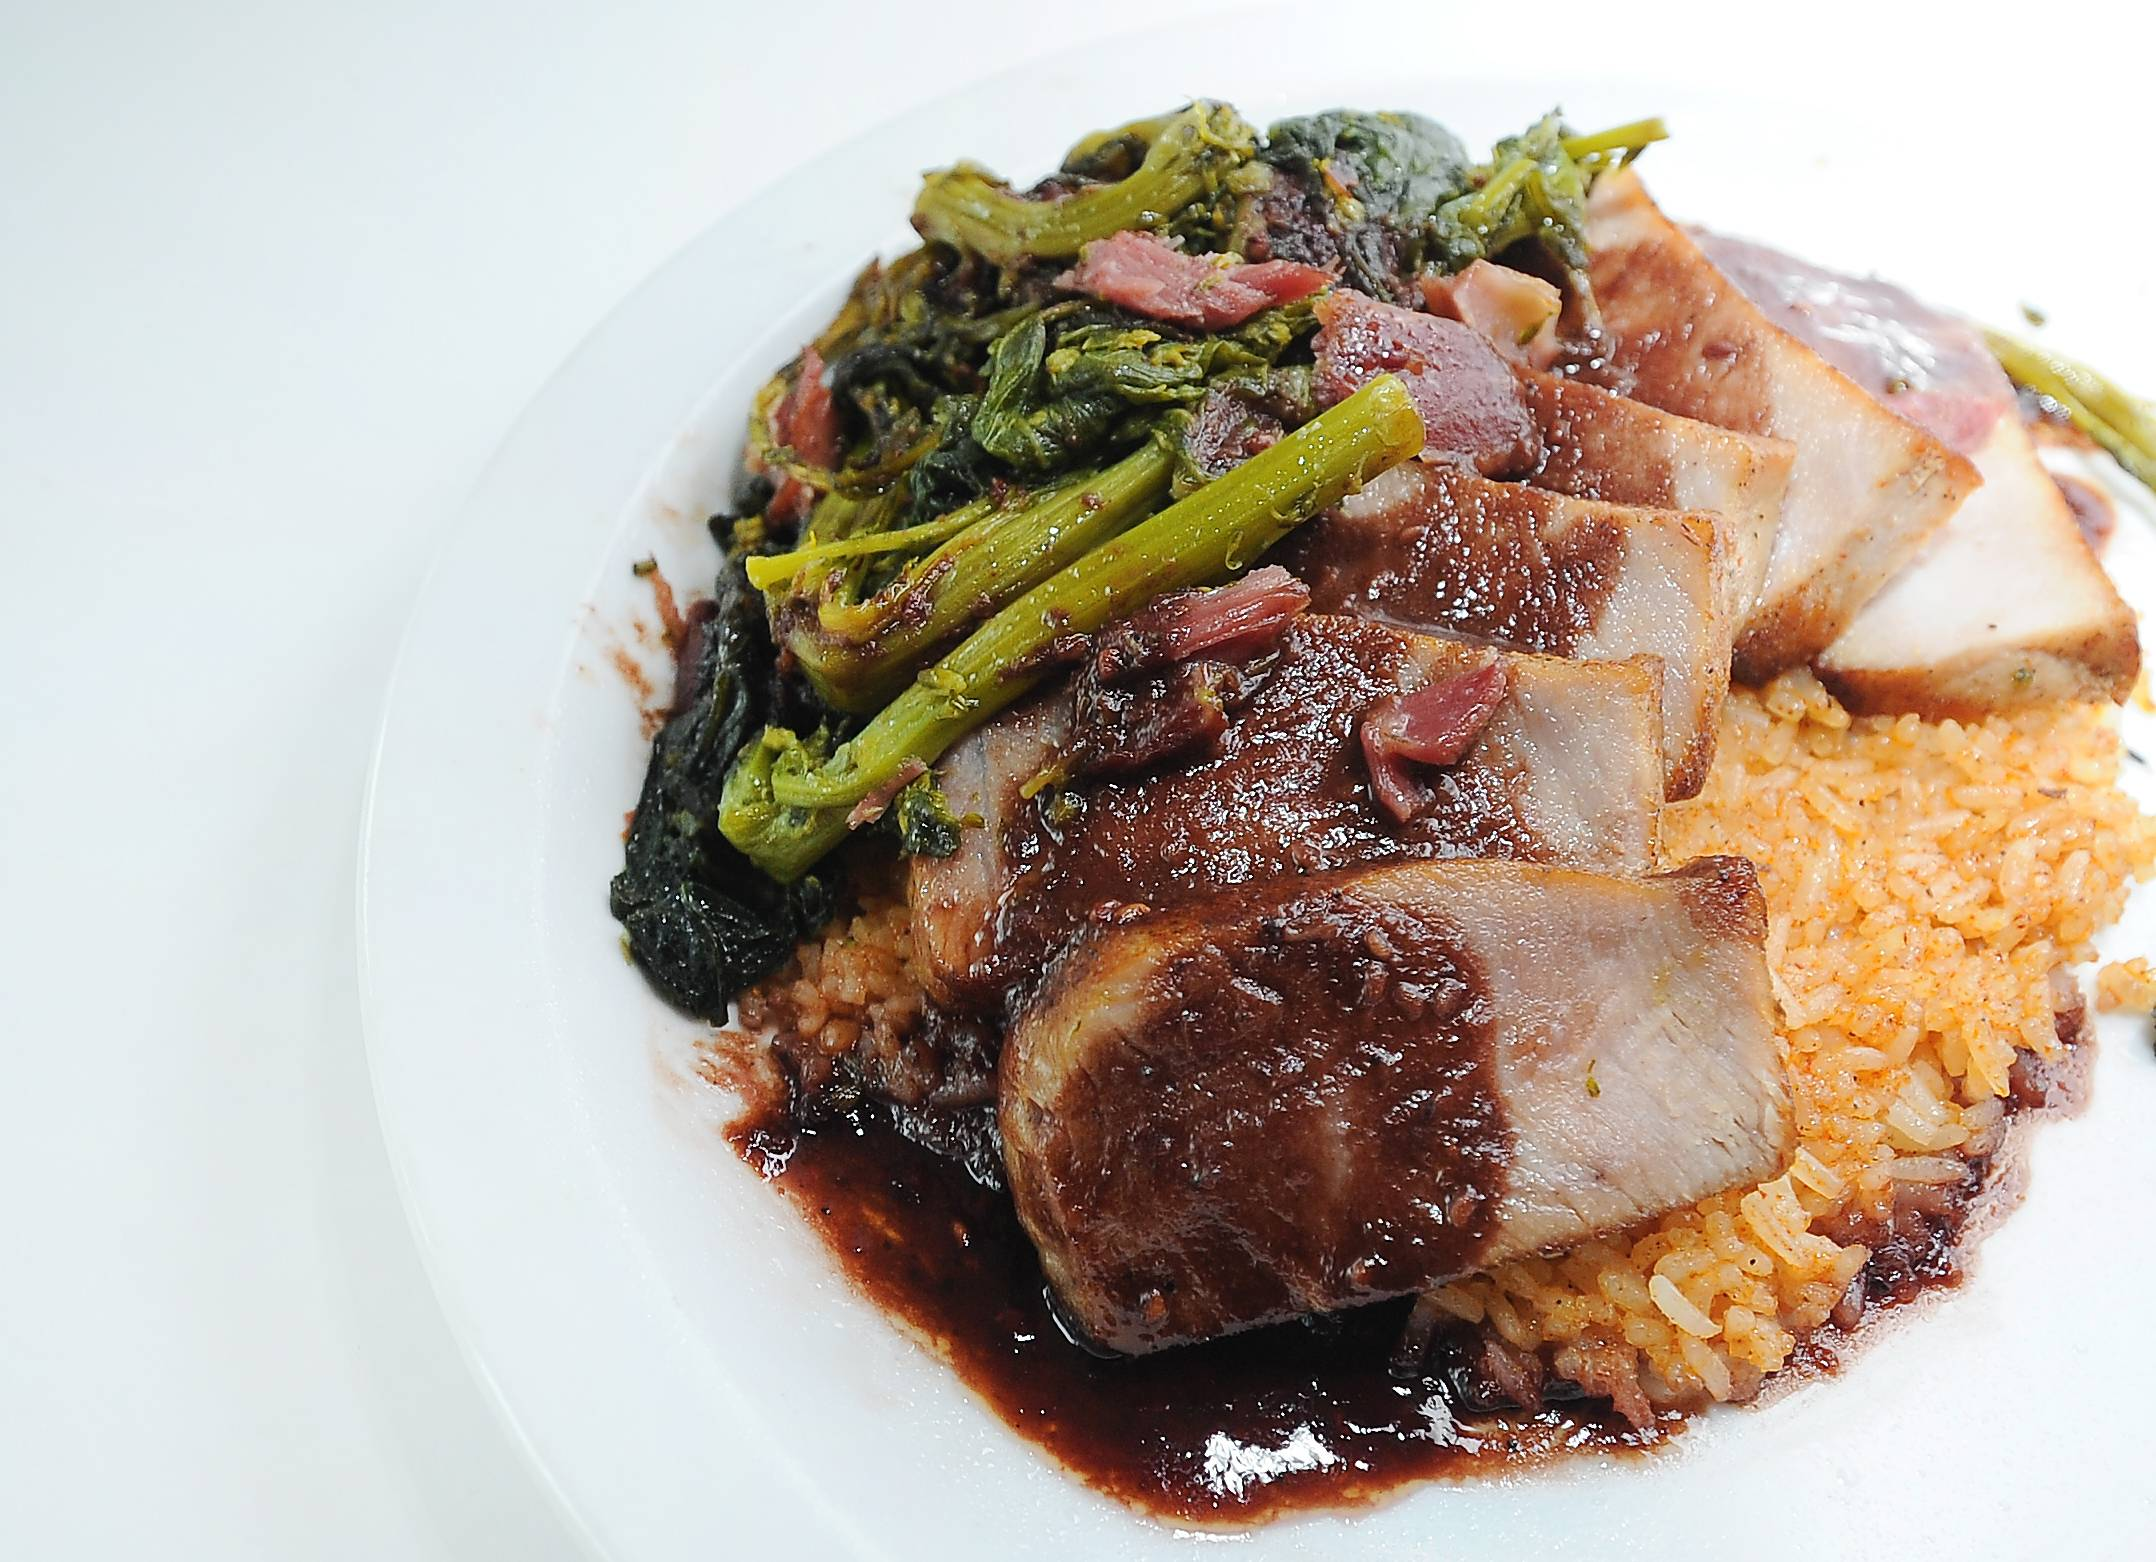 Daniel Imburgia's Spicy Chocolate Raspberry Drizzled Cajun Pork Chops with Southern Style Broccoli Raab